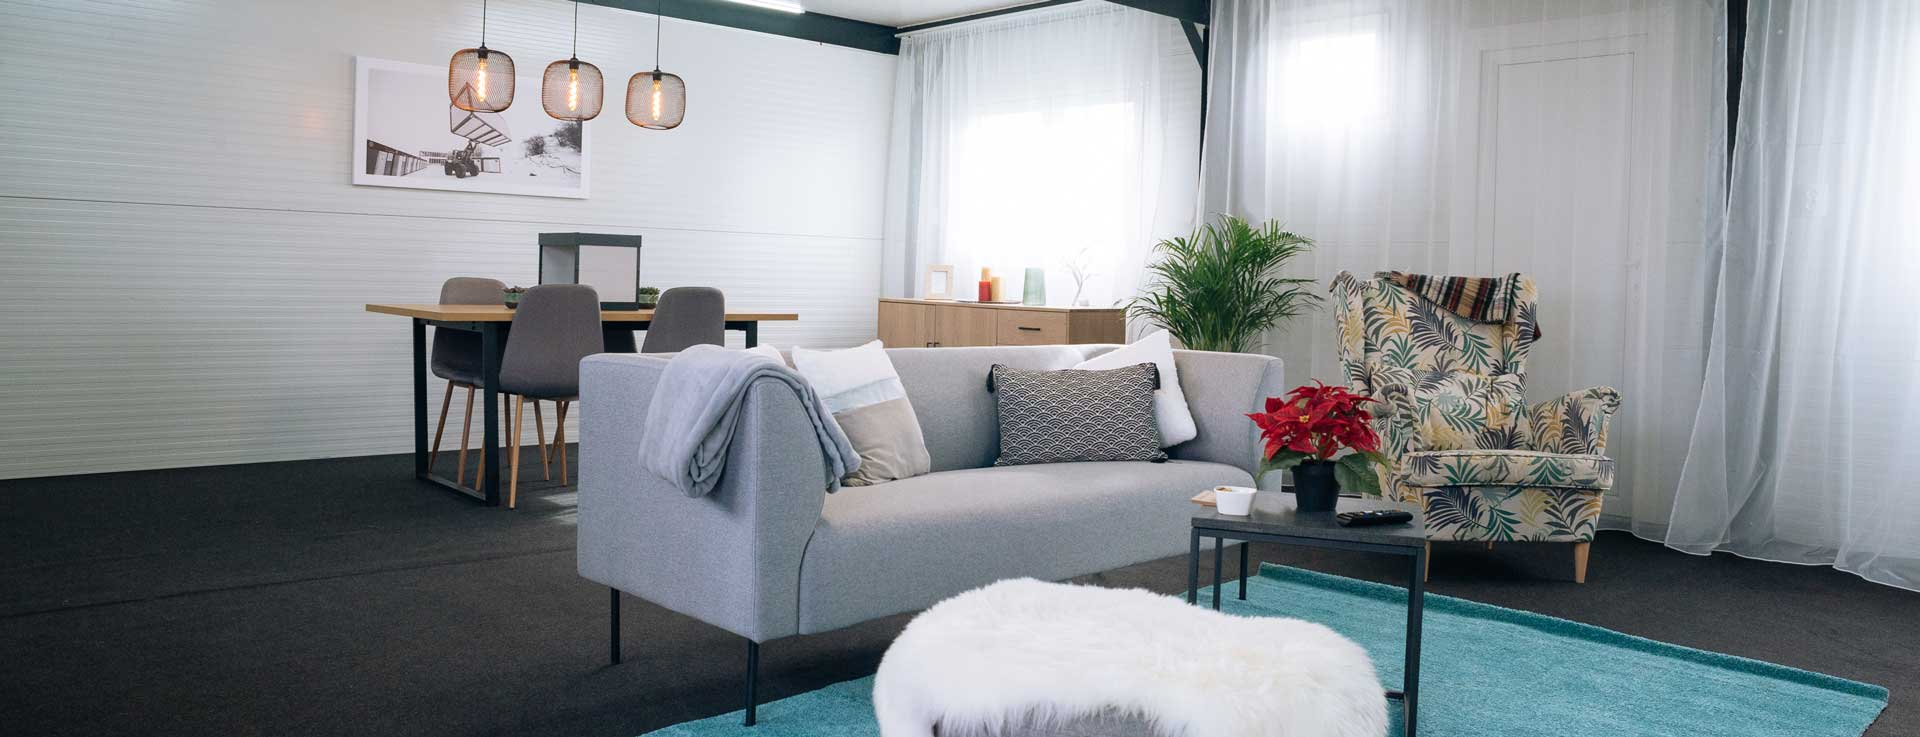 care home container living room